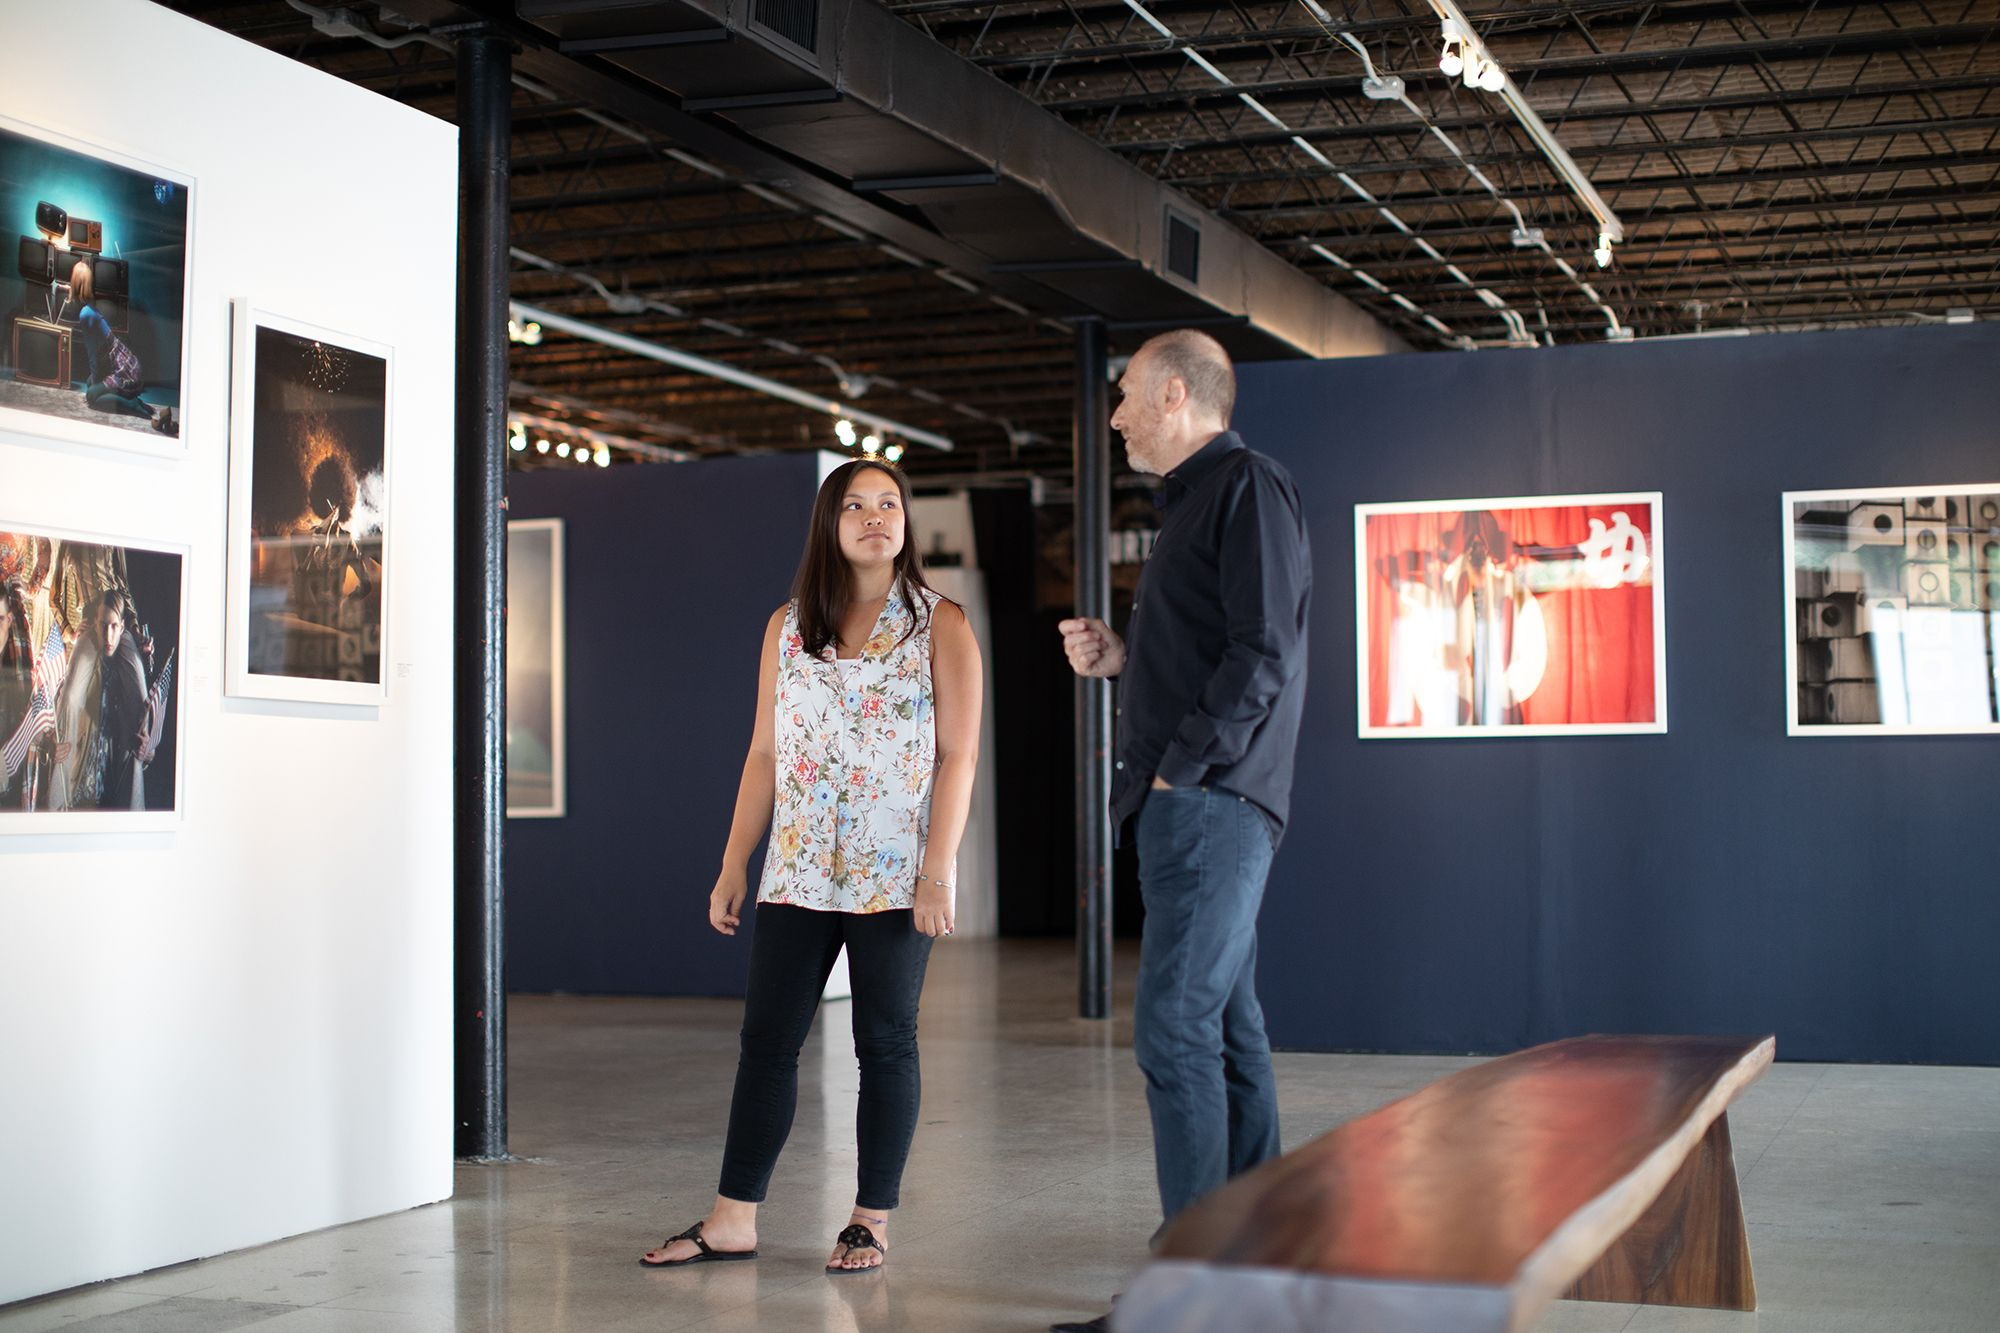 A student intern and an art gallery owner discuss an artwork.